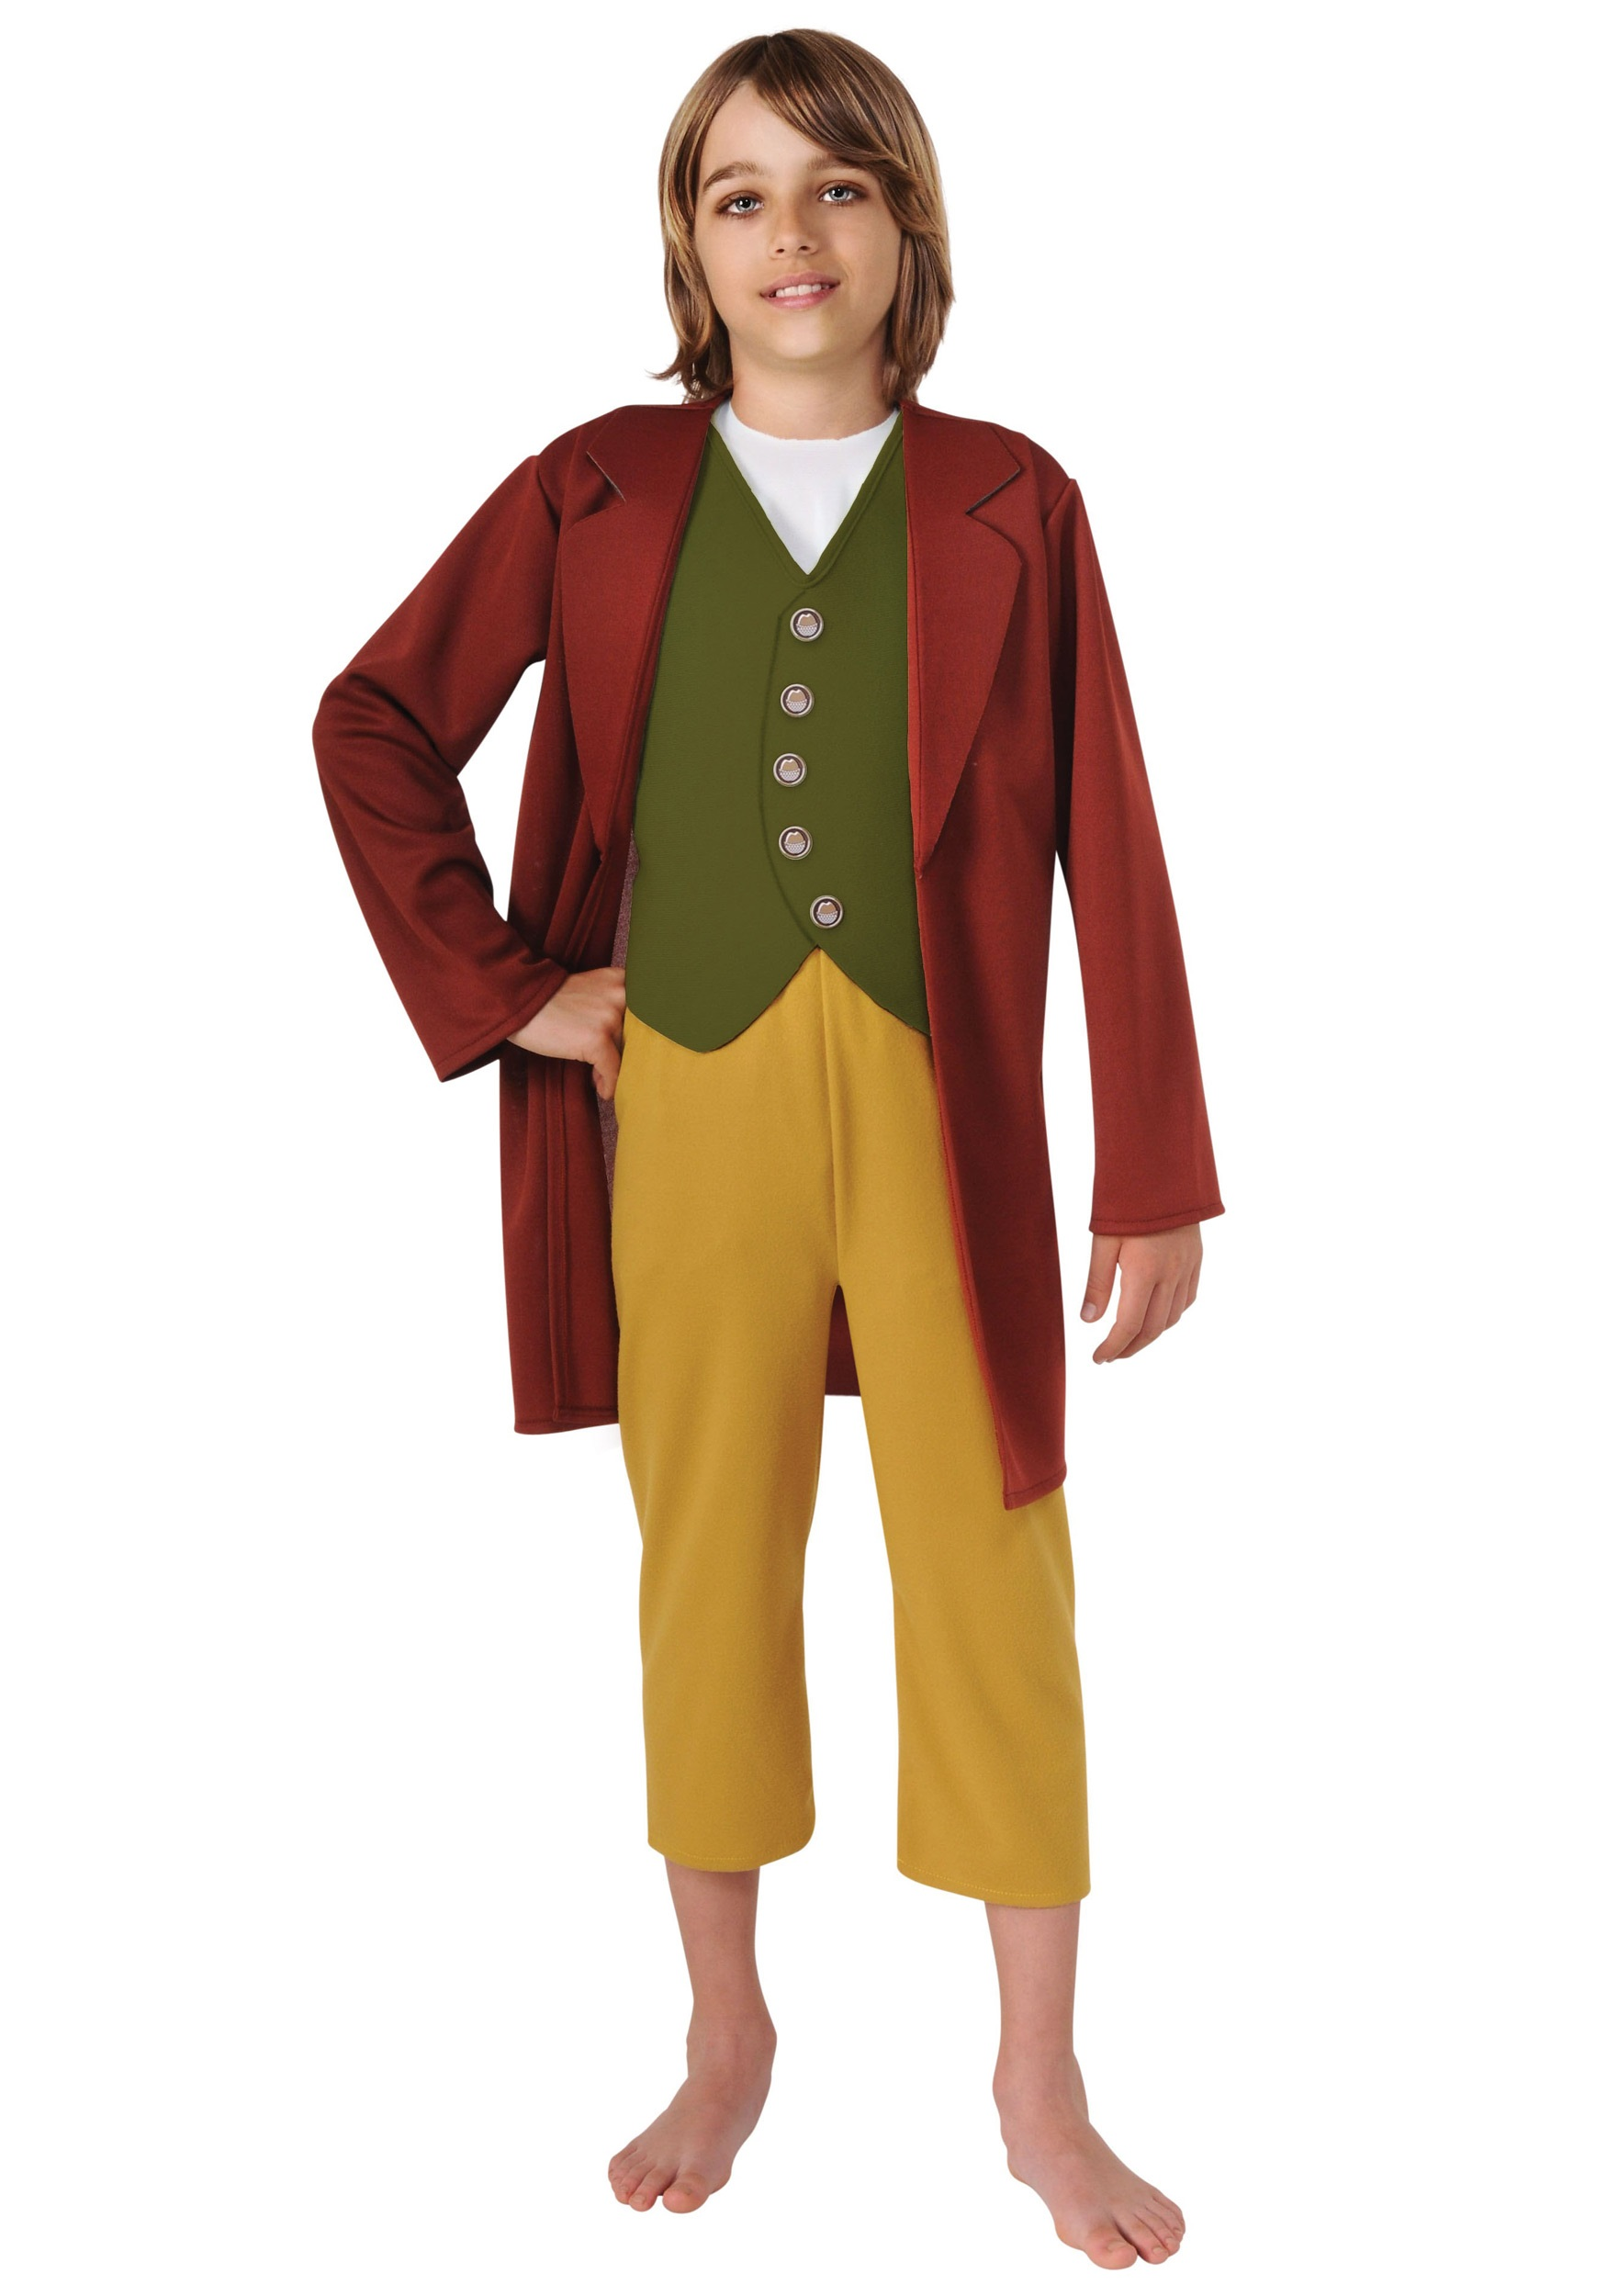 Kids Bilbo Baggins Costume  sc 1 st  Halloween Costumes & Kids Bilbo Baggins Costume - Halloween Costumes